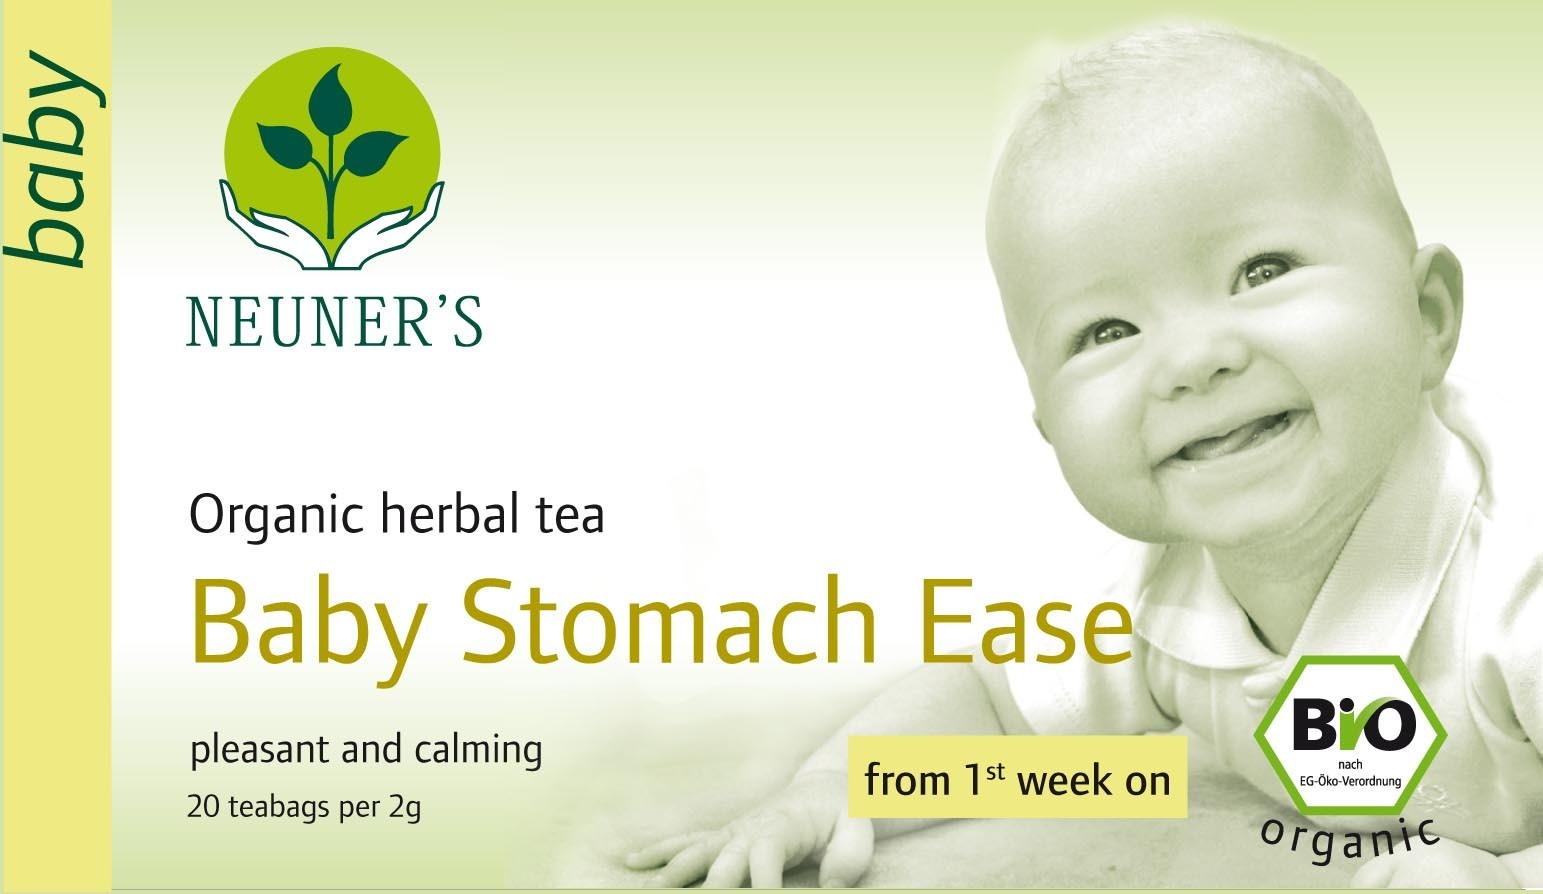 Neuner's Organic Baby Stomach Ease Tea